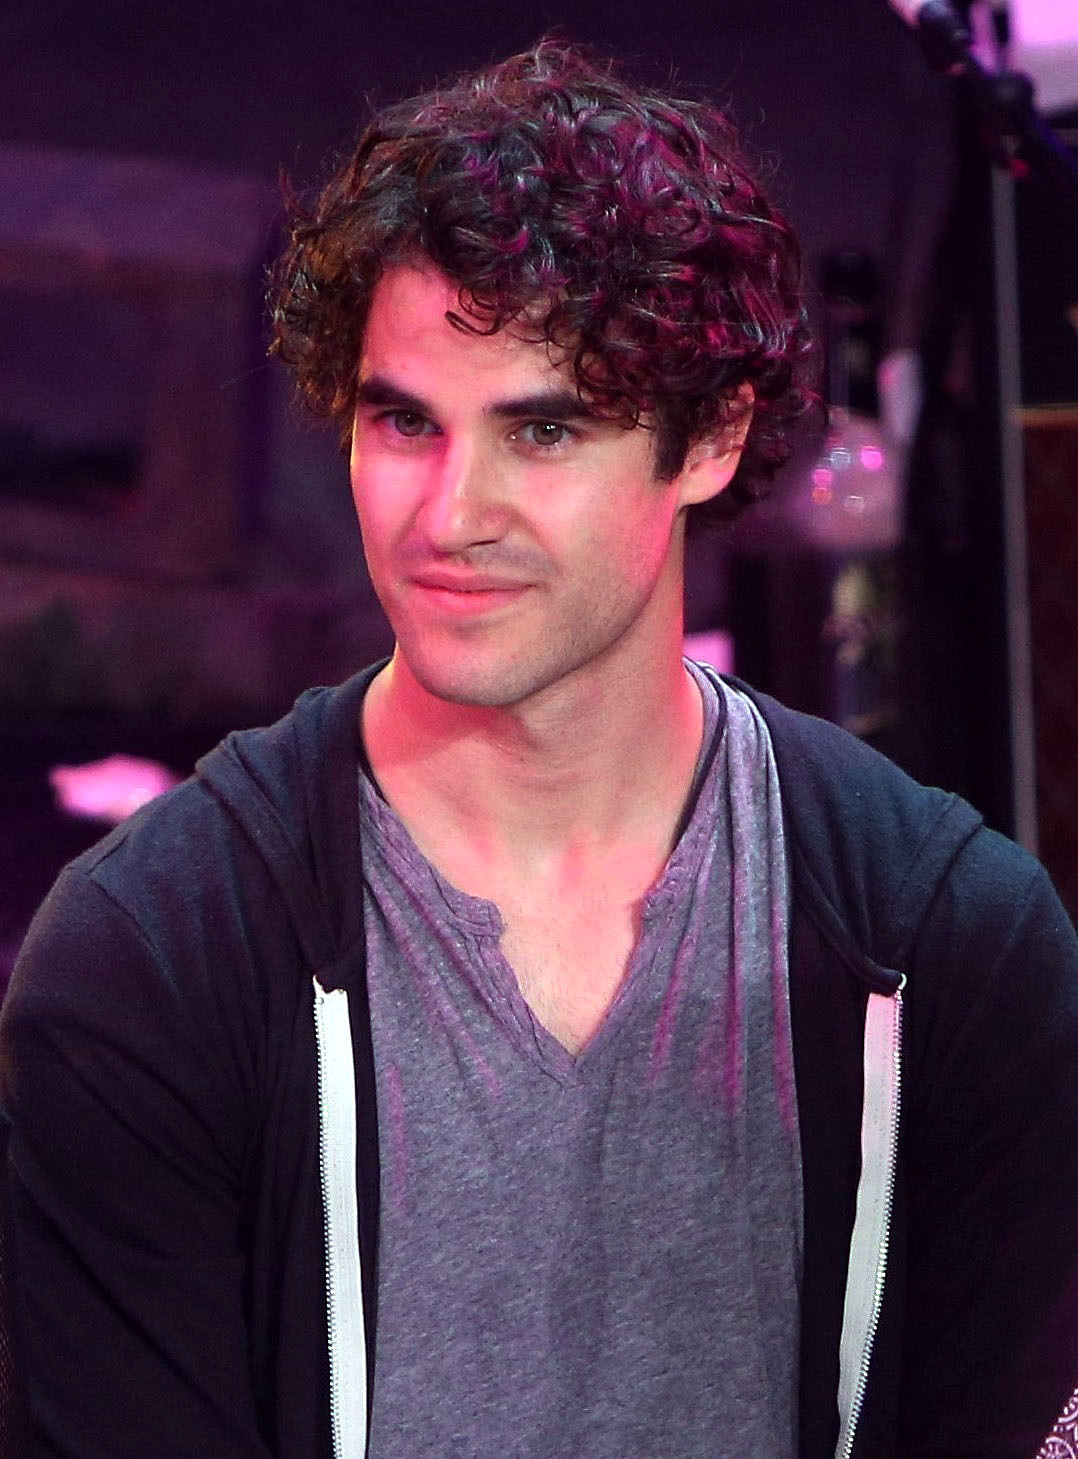 darrenishedwig - Pics and gifs of Darren in Hedwig and the Angry Inch on Broadway. - Page 2 Tumblr_nund7cW3XO1qg49w0o1_1280